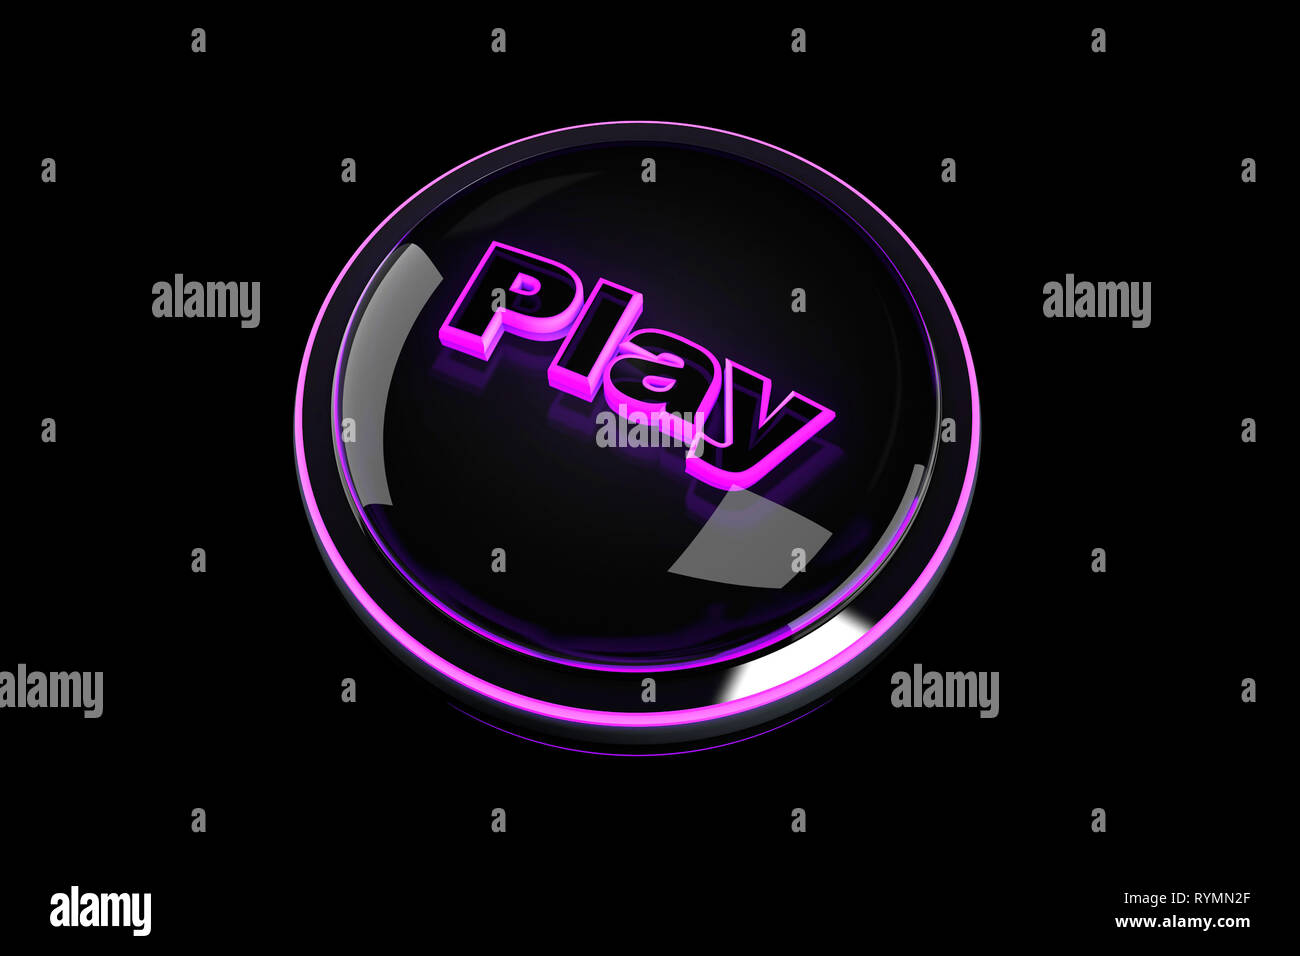 3D rendered Illustration of a Play Pushbutton. - Stock Image